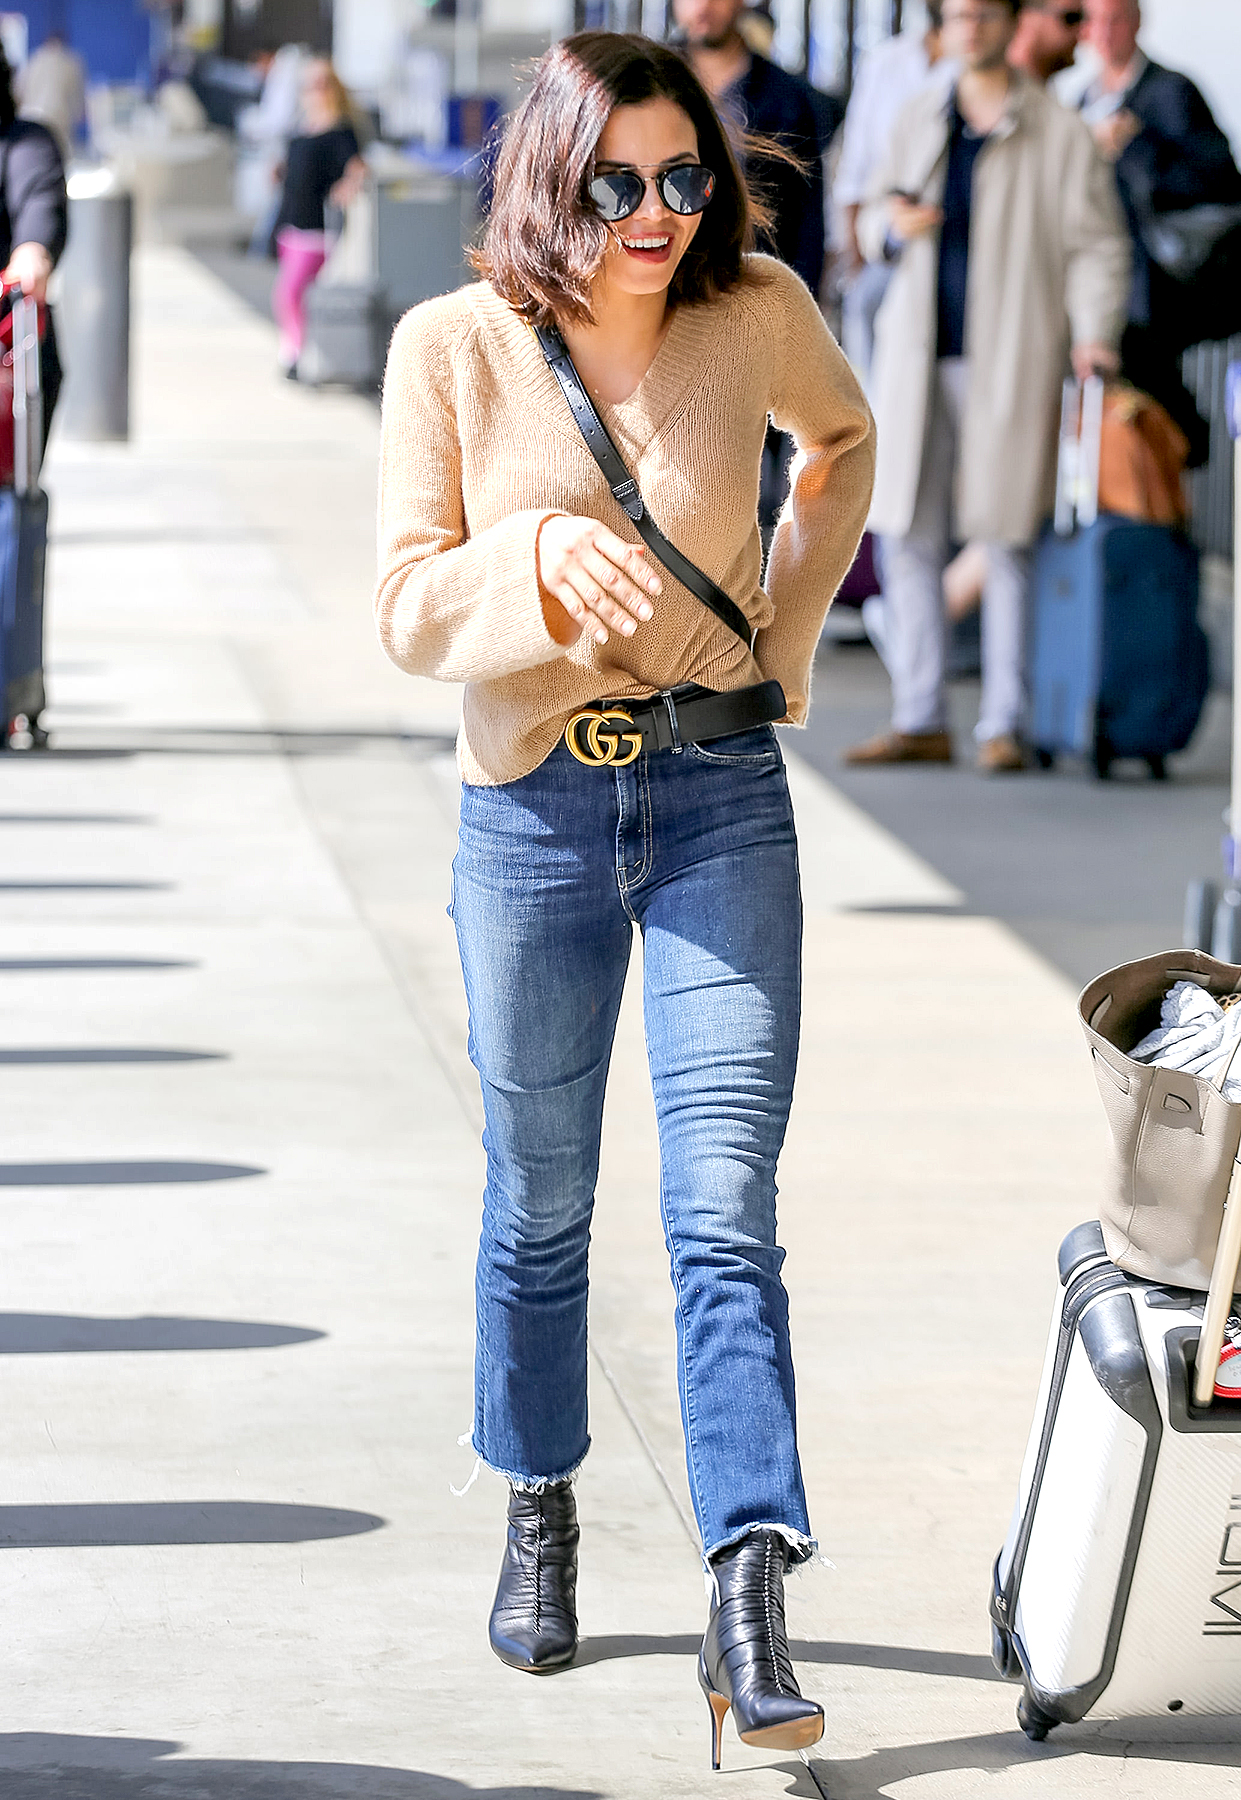 Jenna-Dewan-channing-tatum-dating-jessie-j - The Resident actress, 37, was all smiles making her way through the airport.